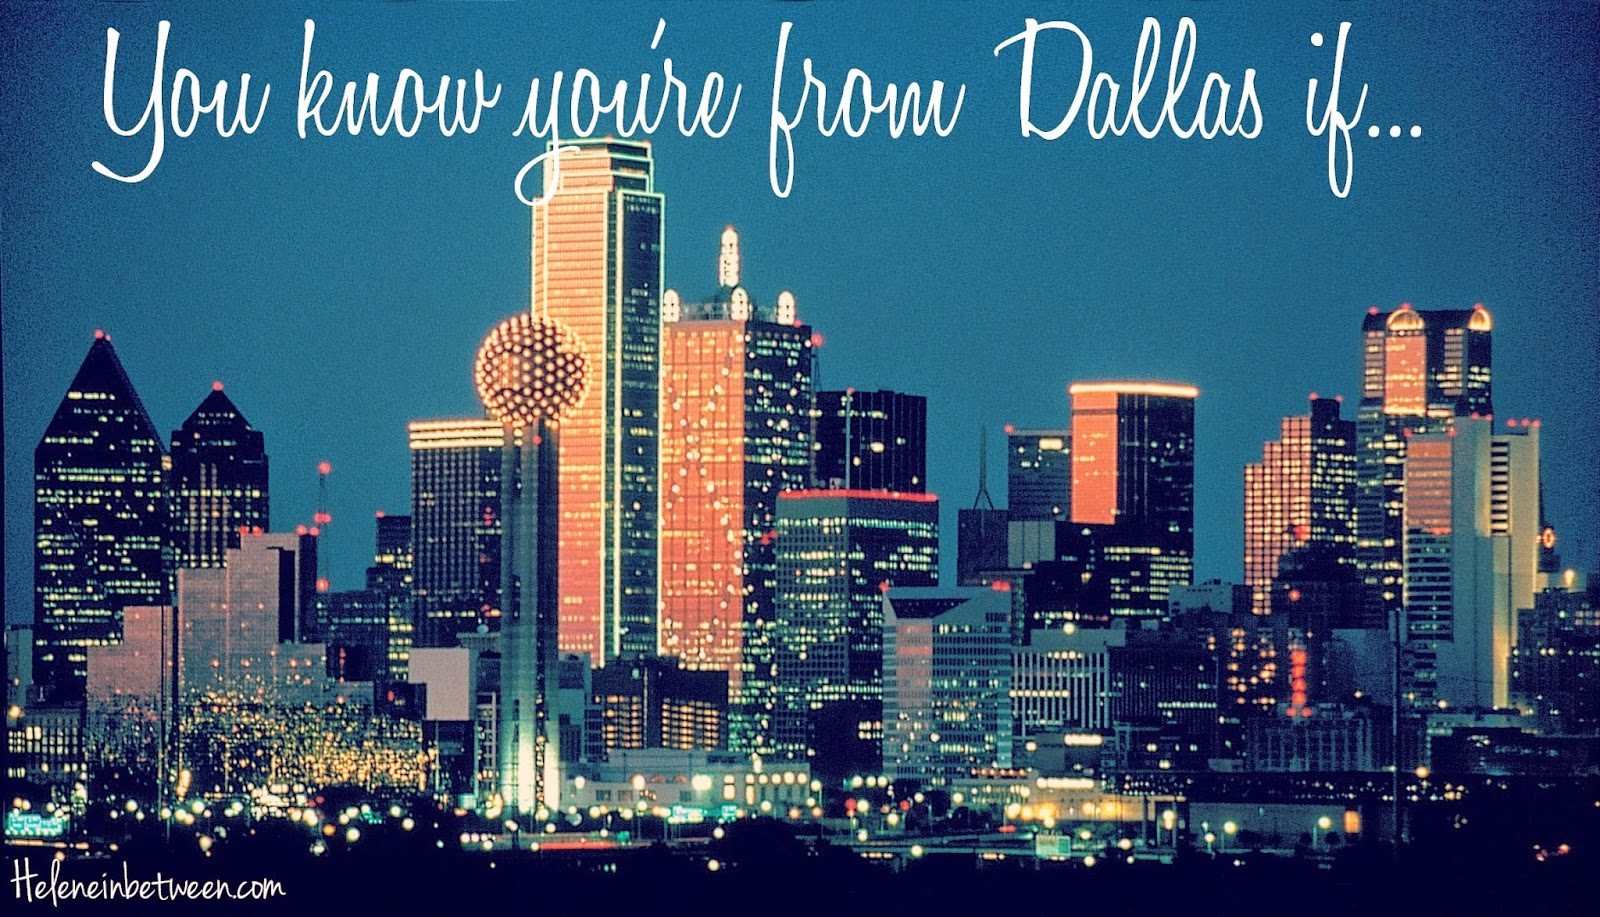 You know You're from Dallas if